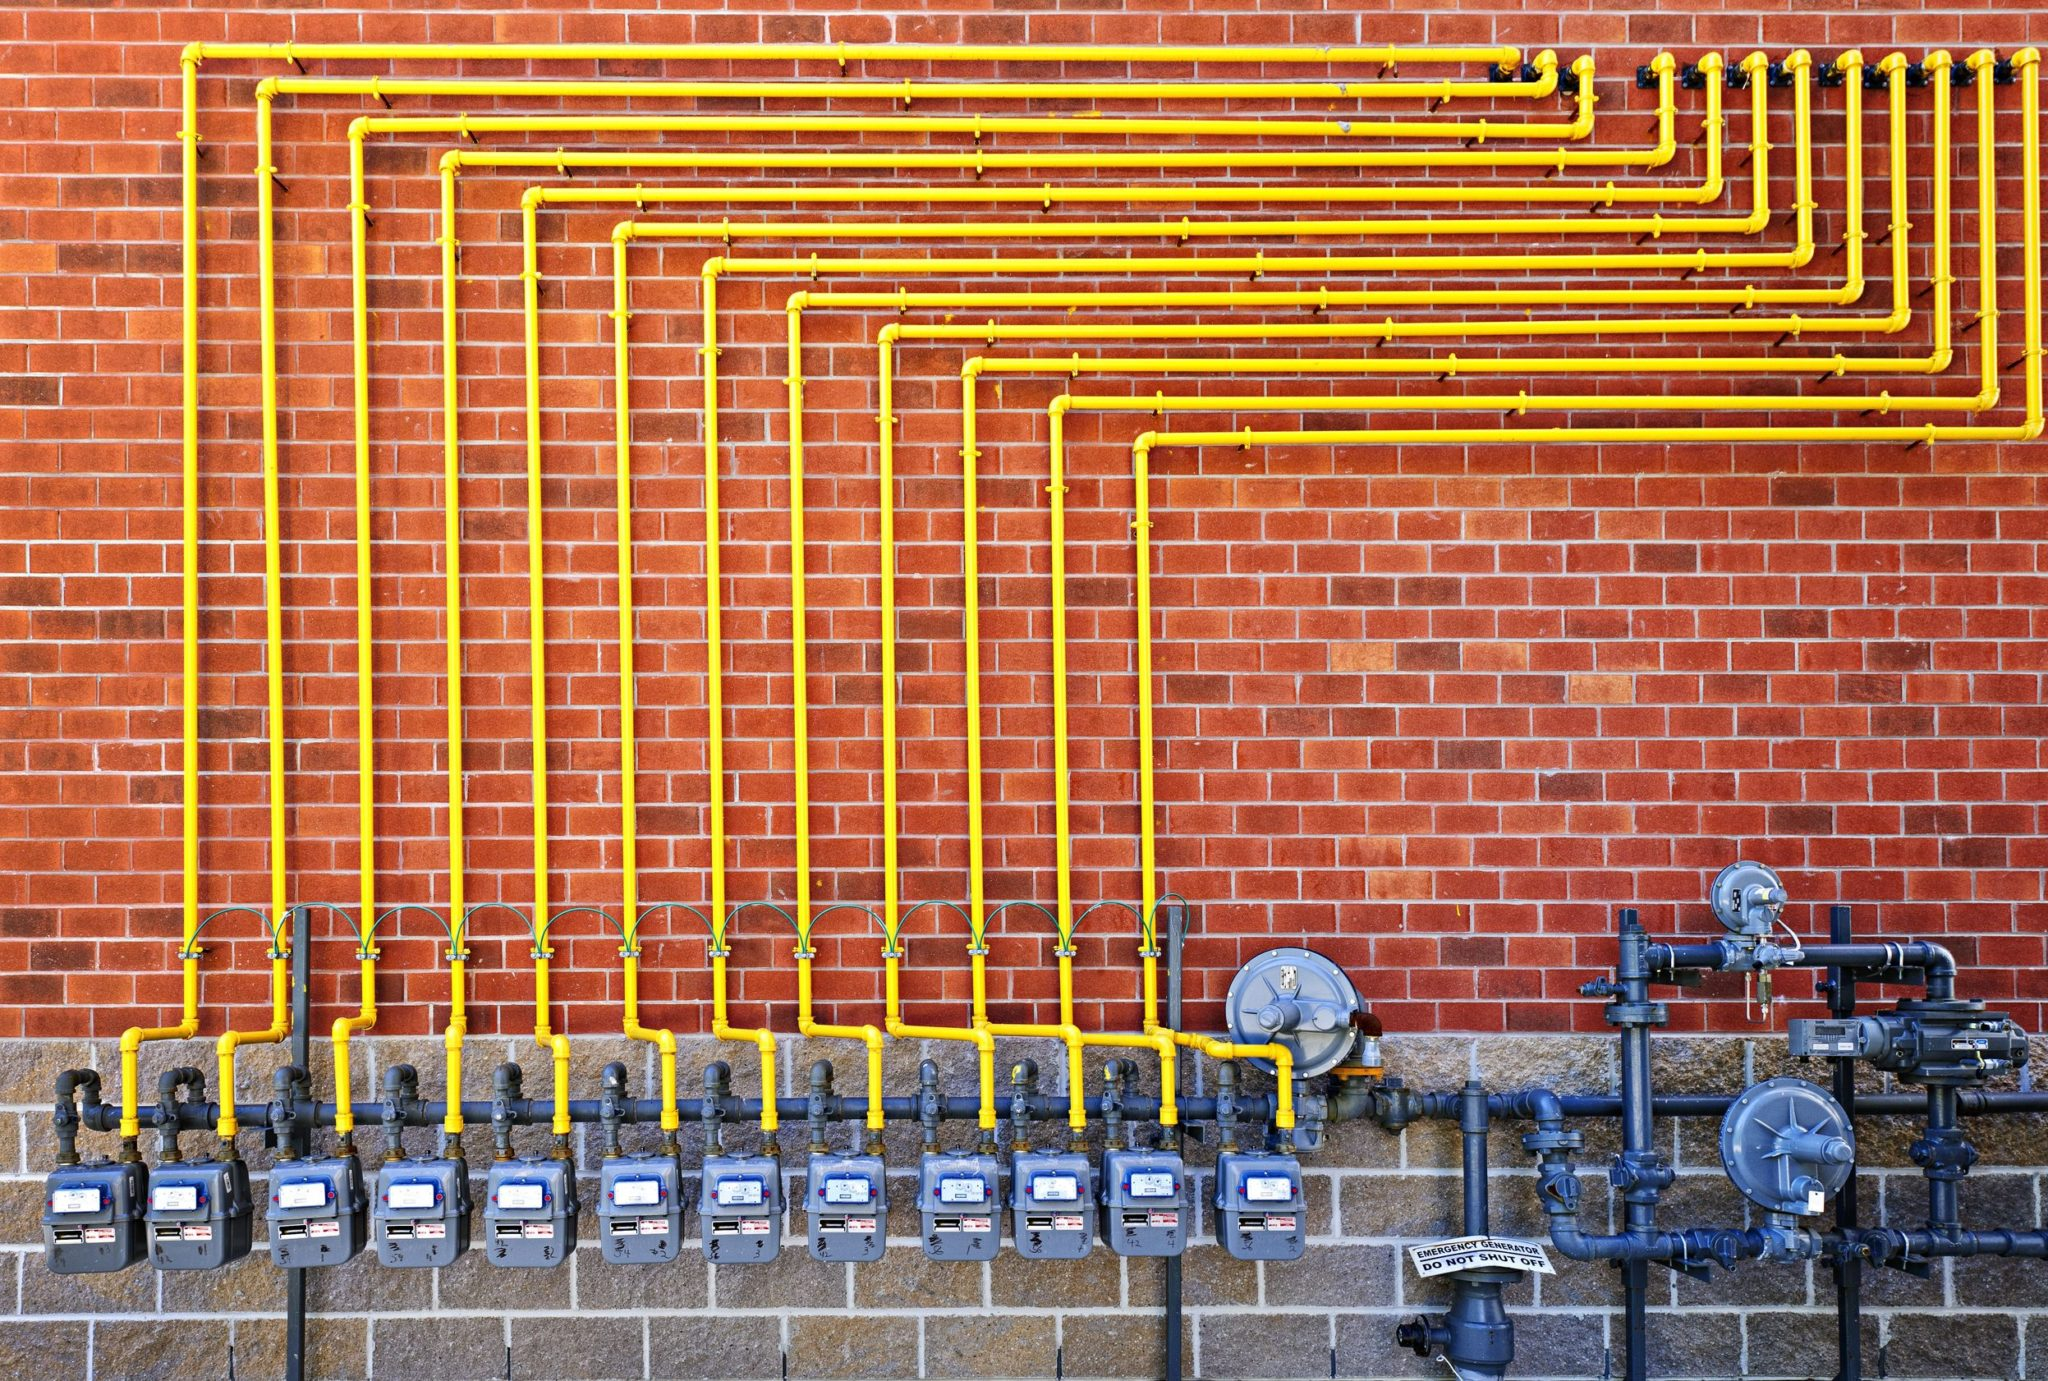 Smart metering traction continues with new project in Belgium